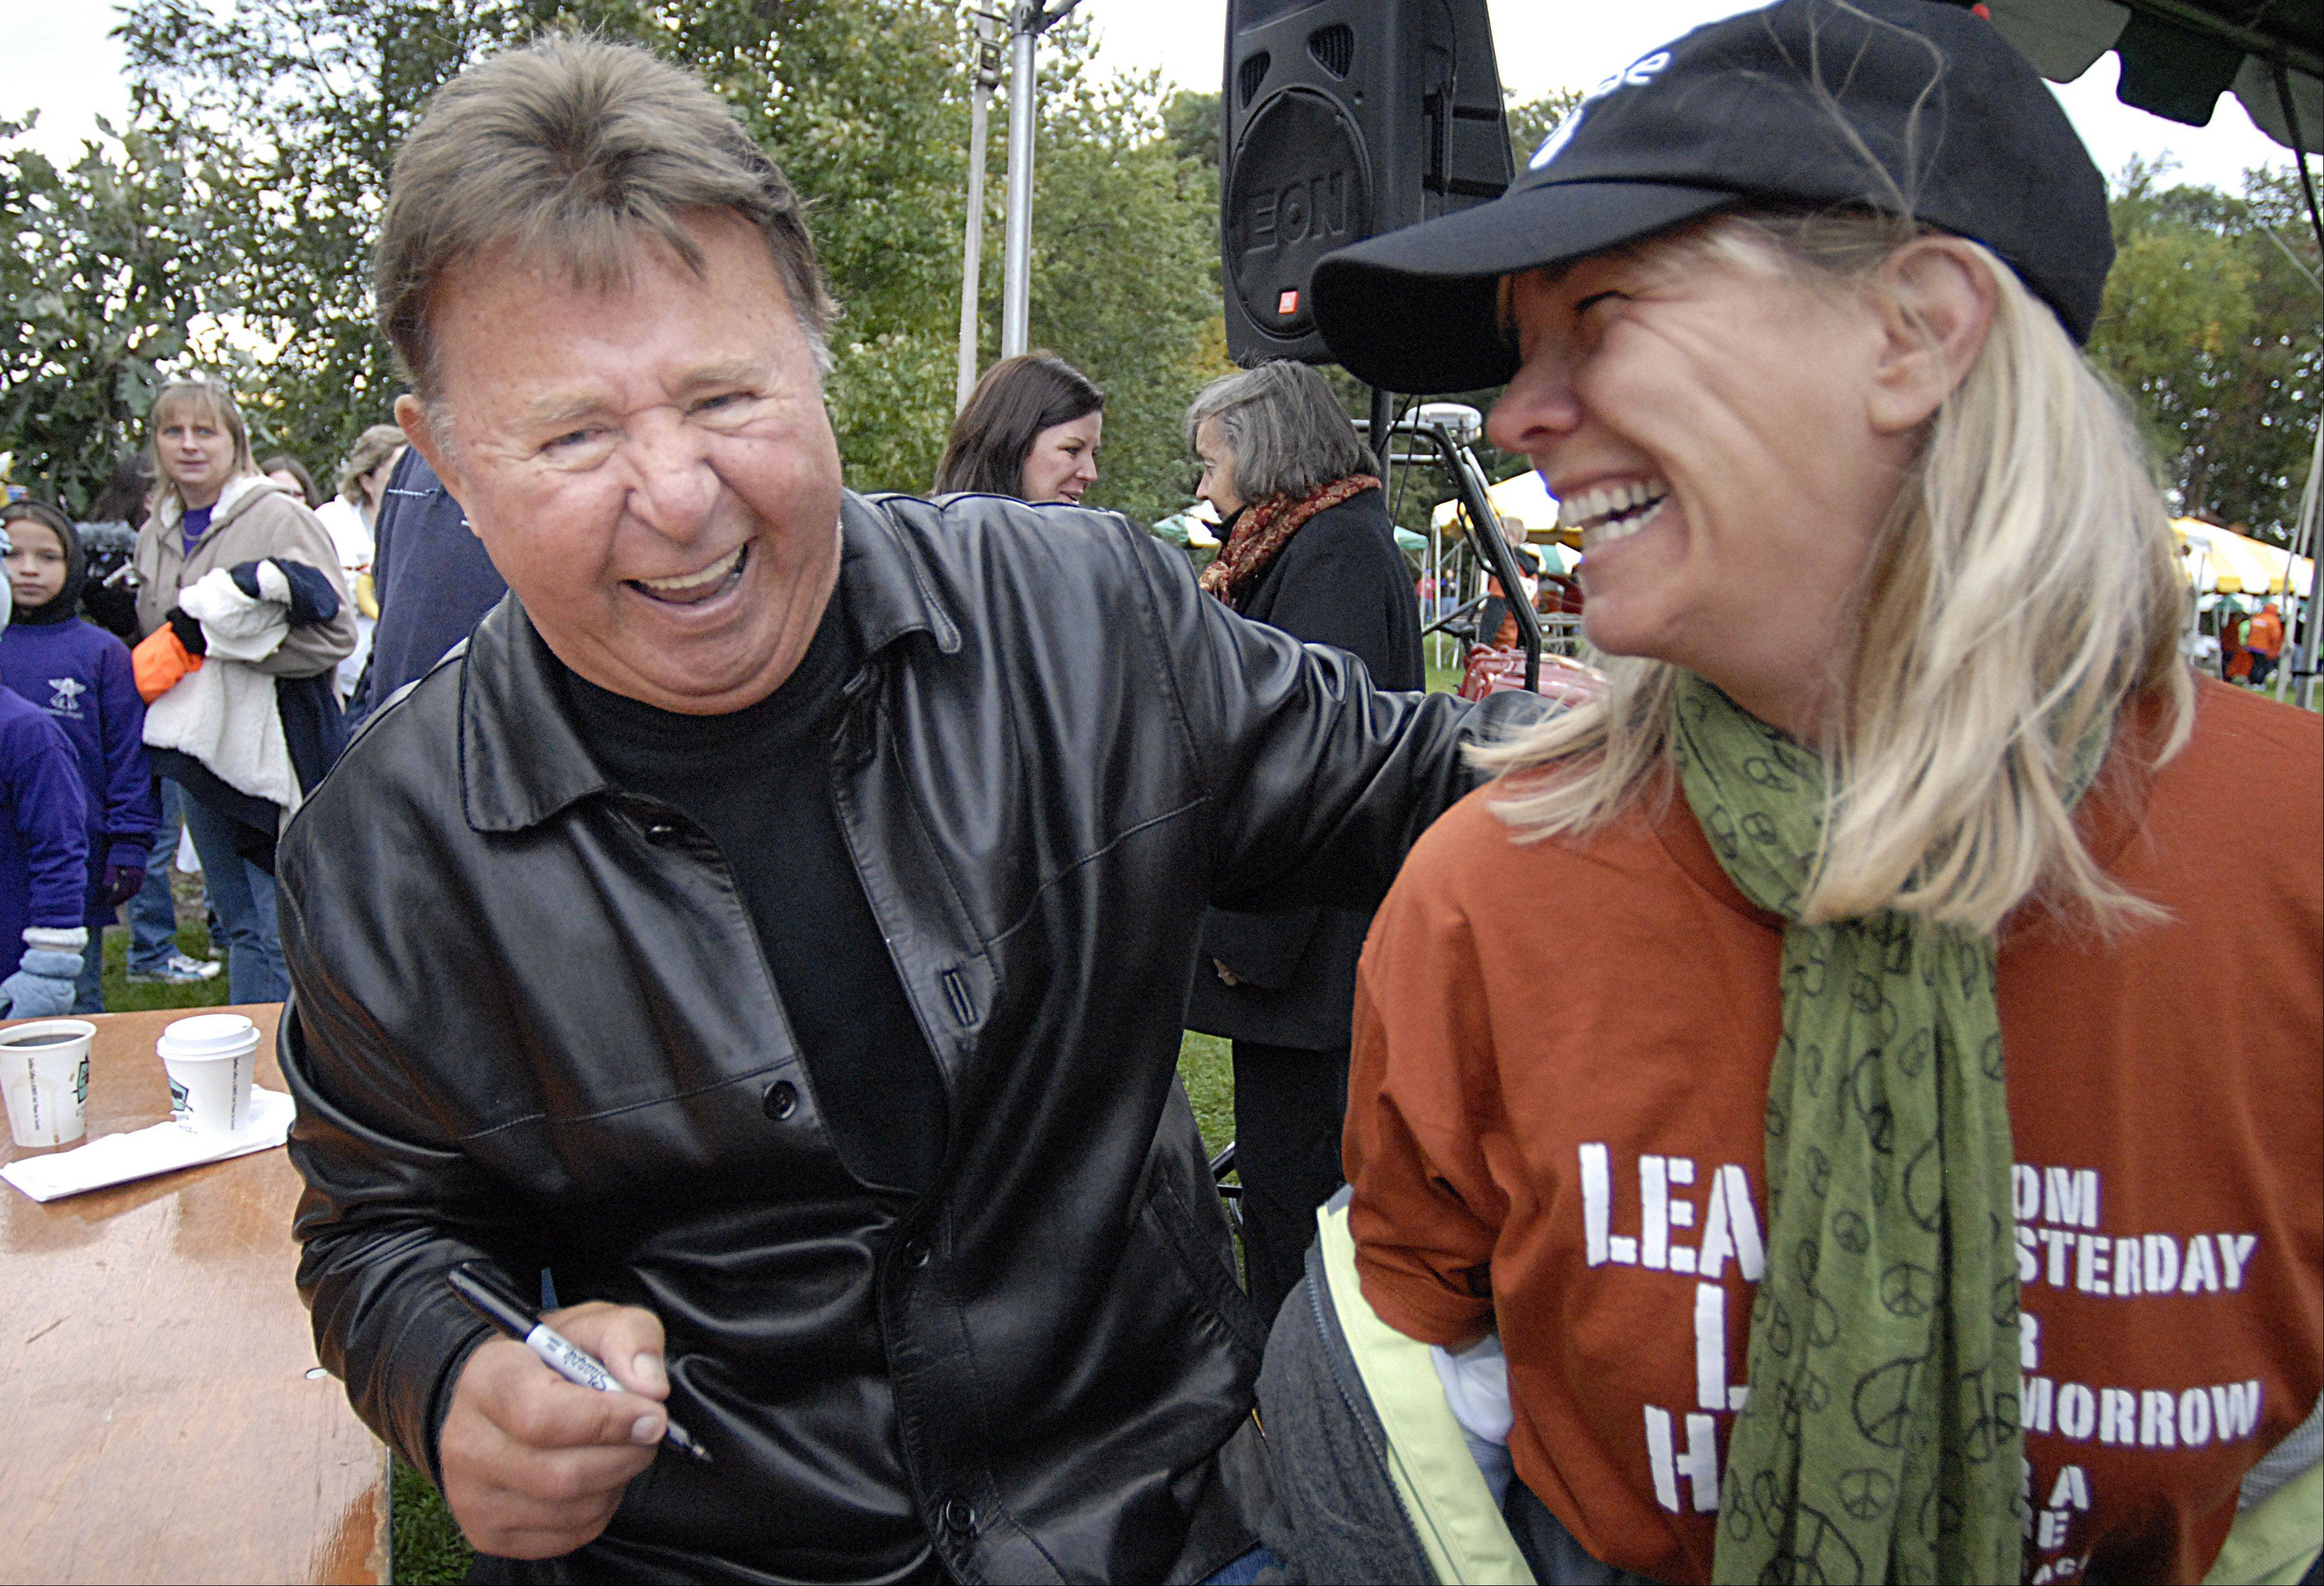 Chicago Cubs Hall of Famer Ron Santo did more than lend his name to the JDRF Walk to Cure Diabetes. He visited walks every year, talking with participants and fellow sufferers of Type 1 diabetes.